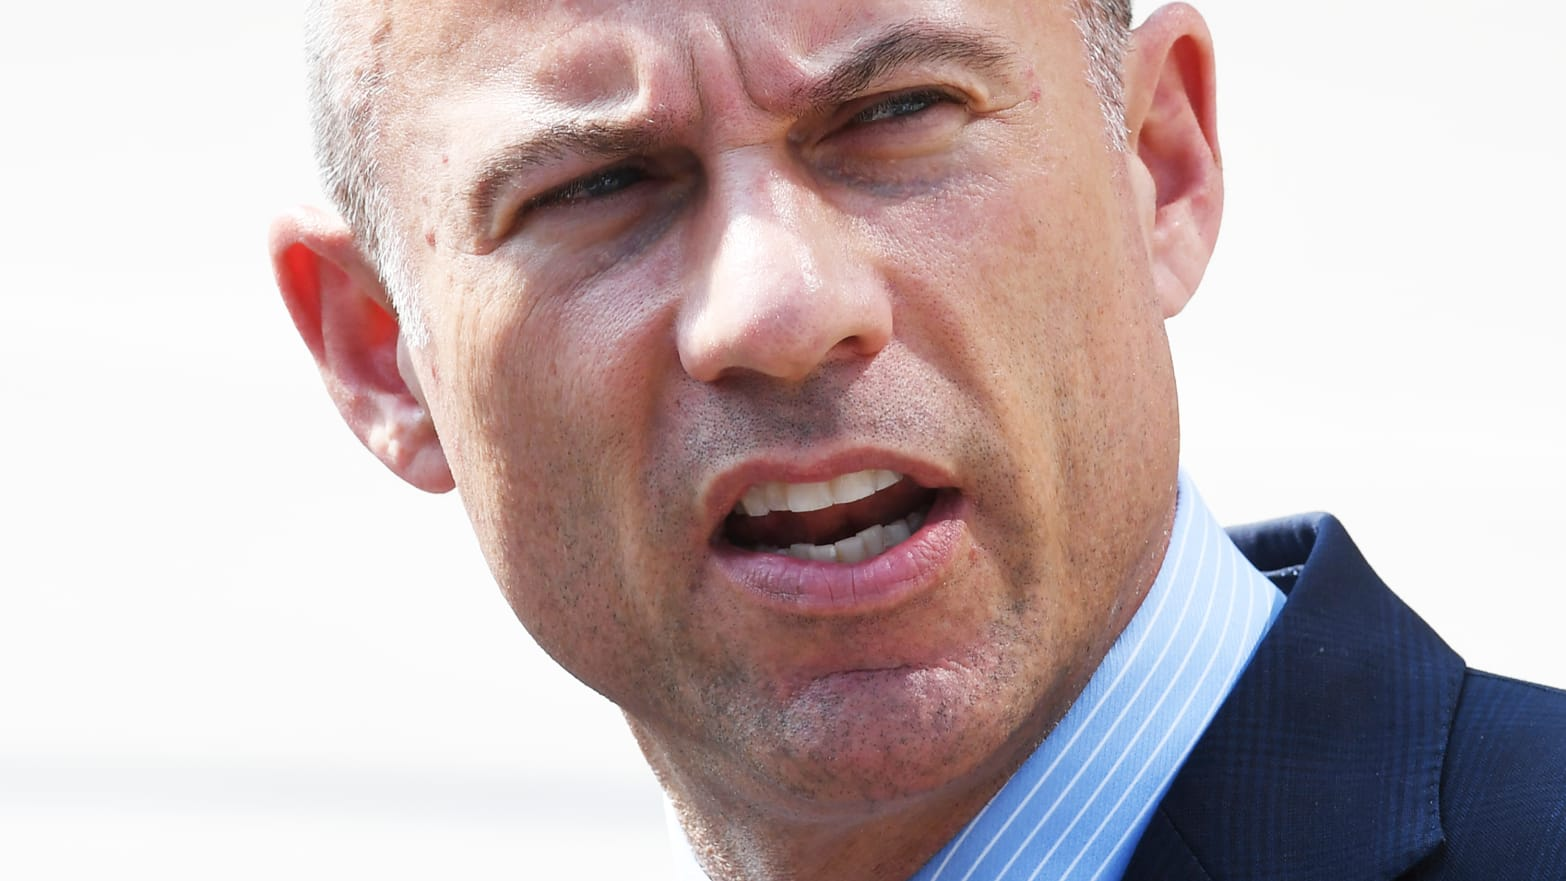 Former Client Accuses Michael Avenatti of Operating Law Firm